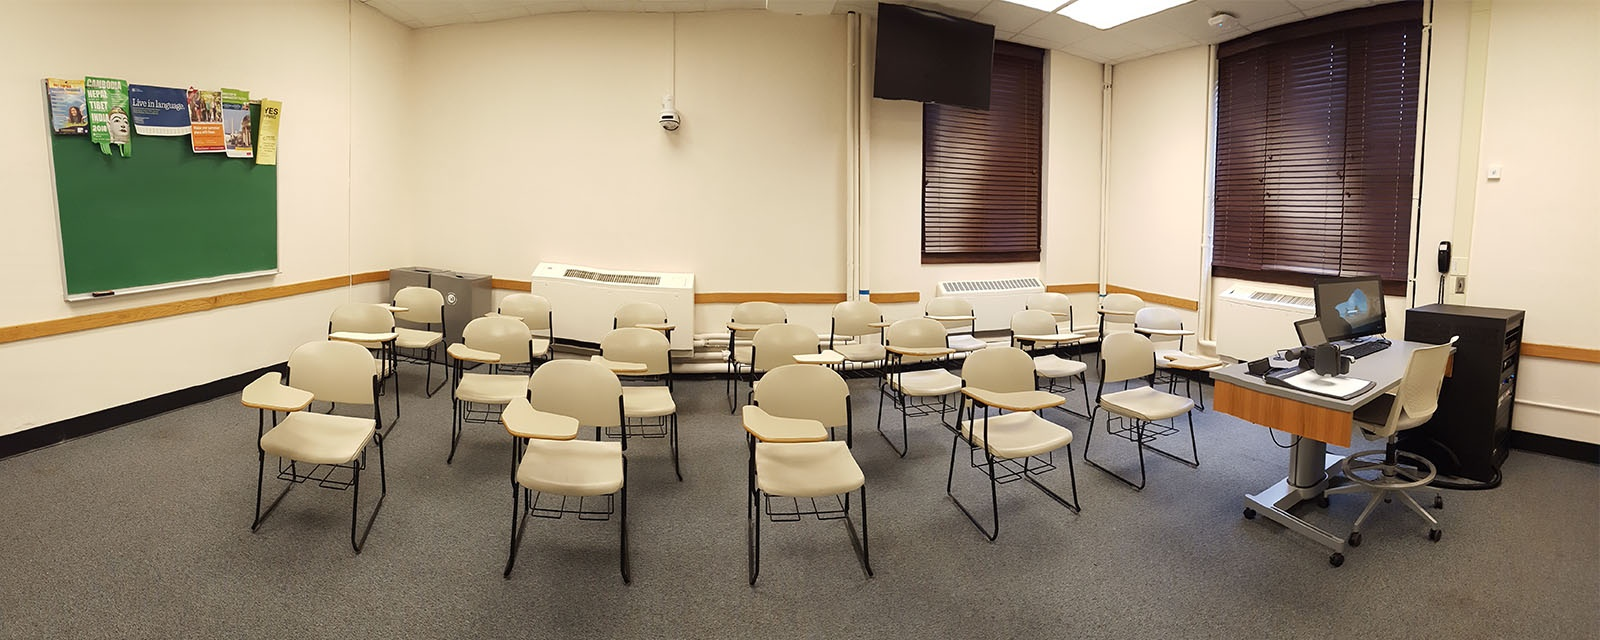 Panorama Bowne 108 from front of room to back of room, chairs moveable with desks attached, teaching station directly across from door.